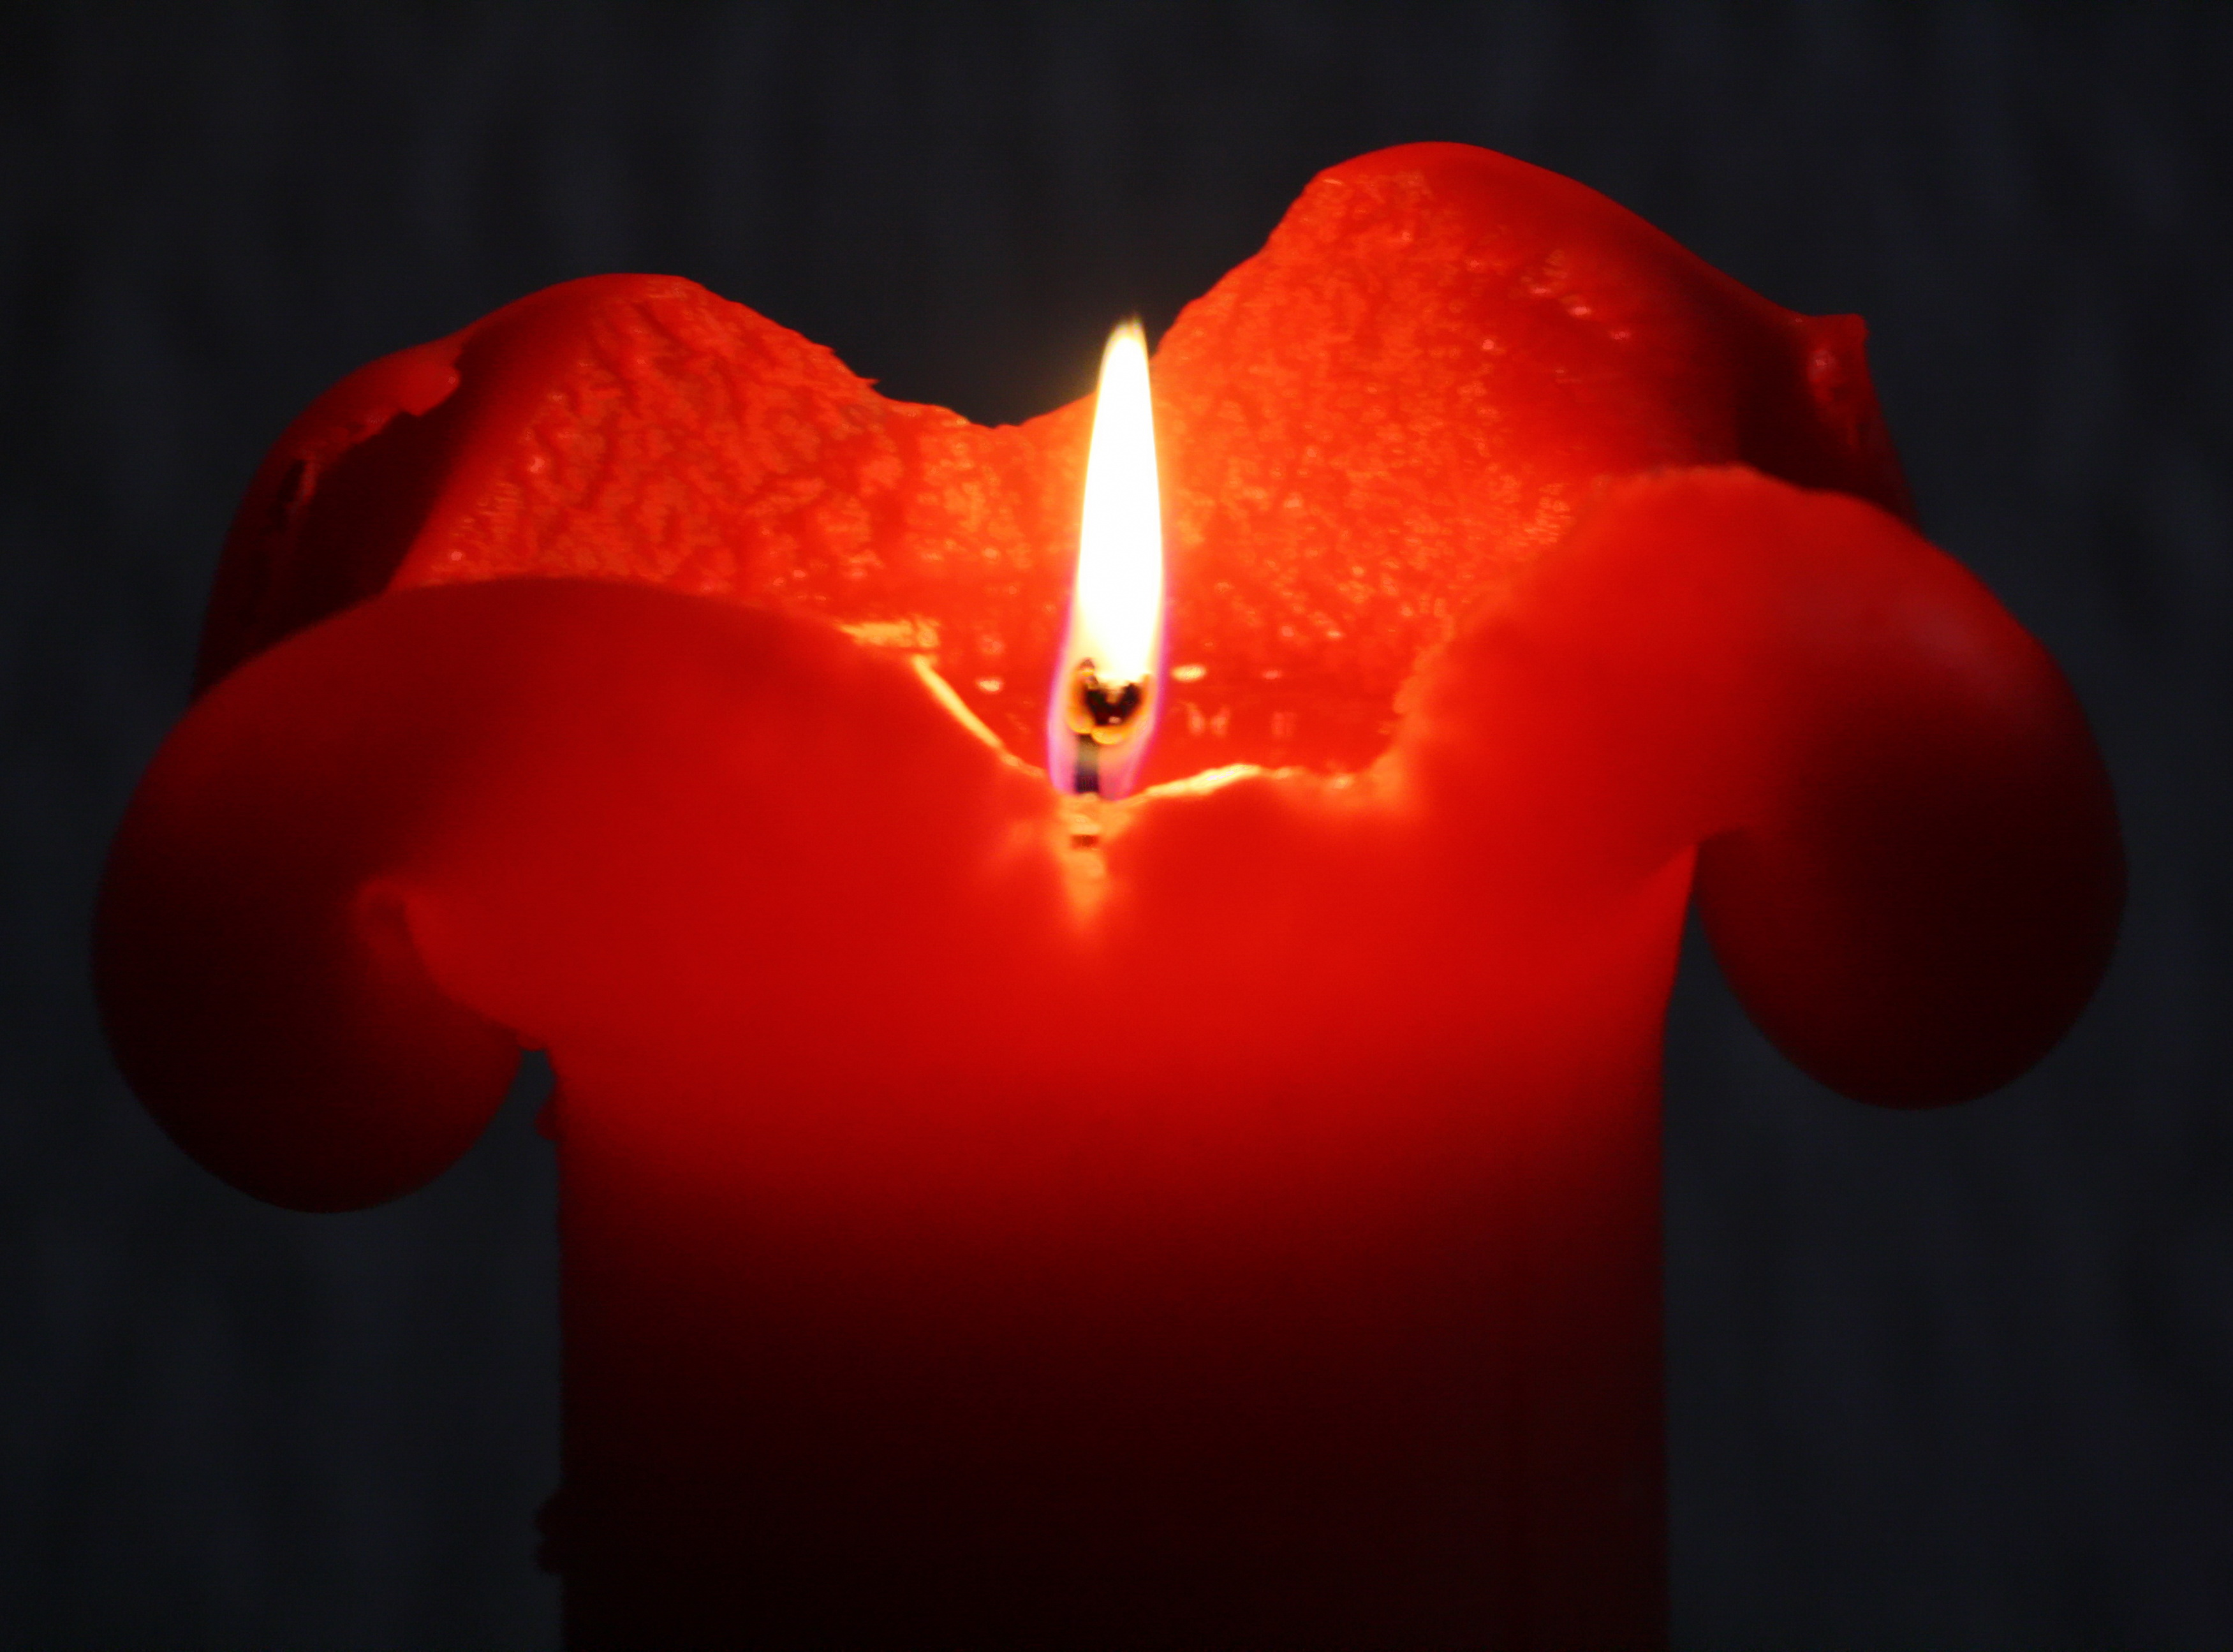 File:Rote Kerze red candle.JPG - Wikimedia Commons